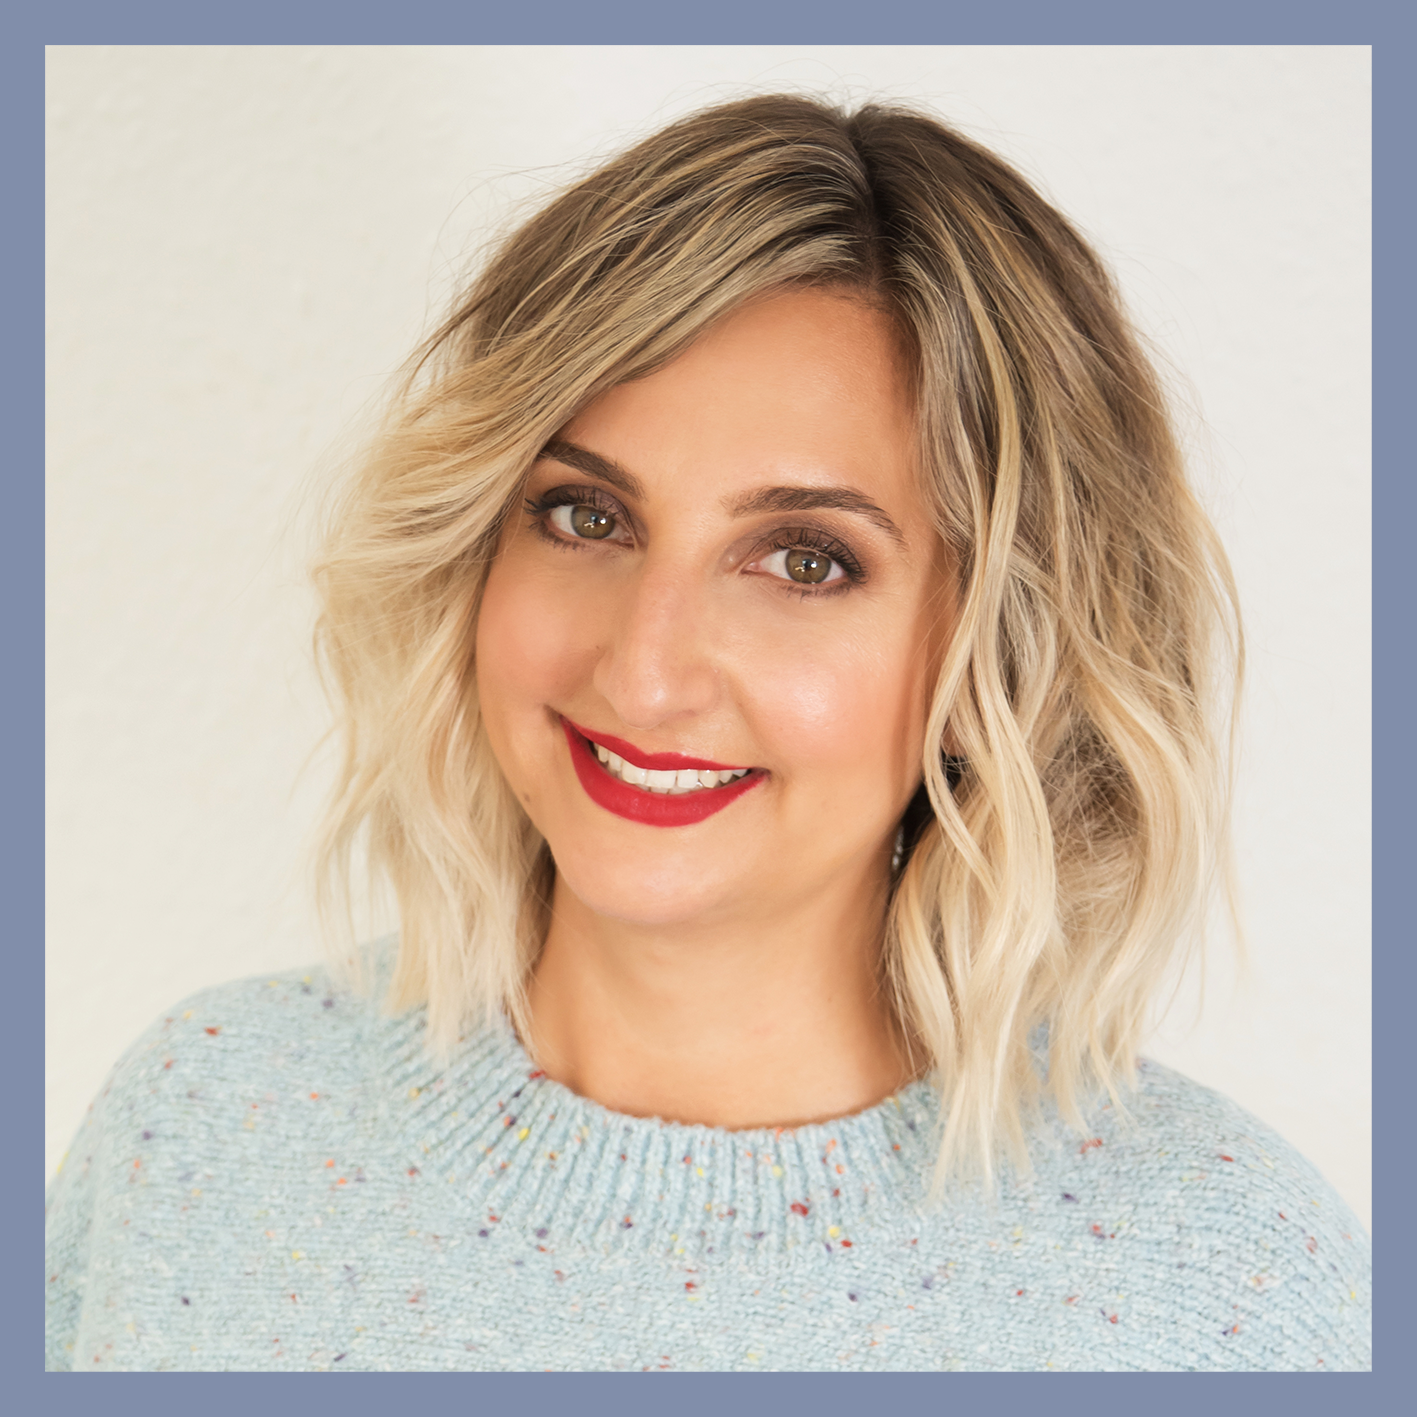 Qualified Hypnotherapist and Life Coach, Leila Ghazai at Change Dream Create, London